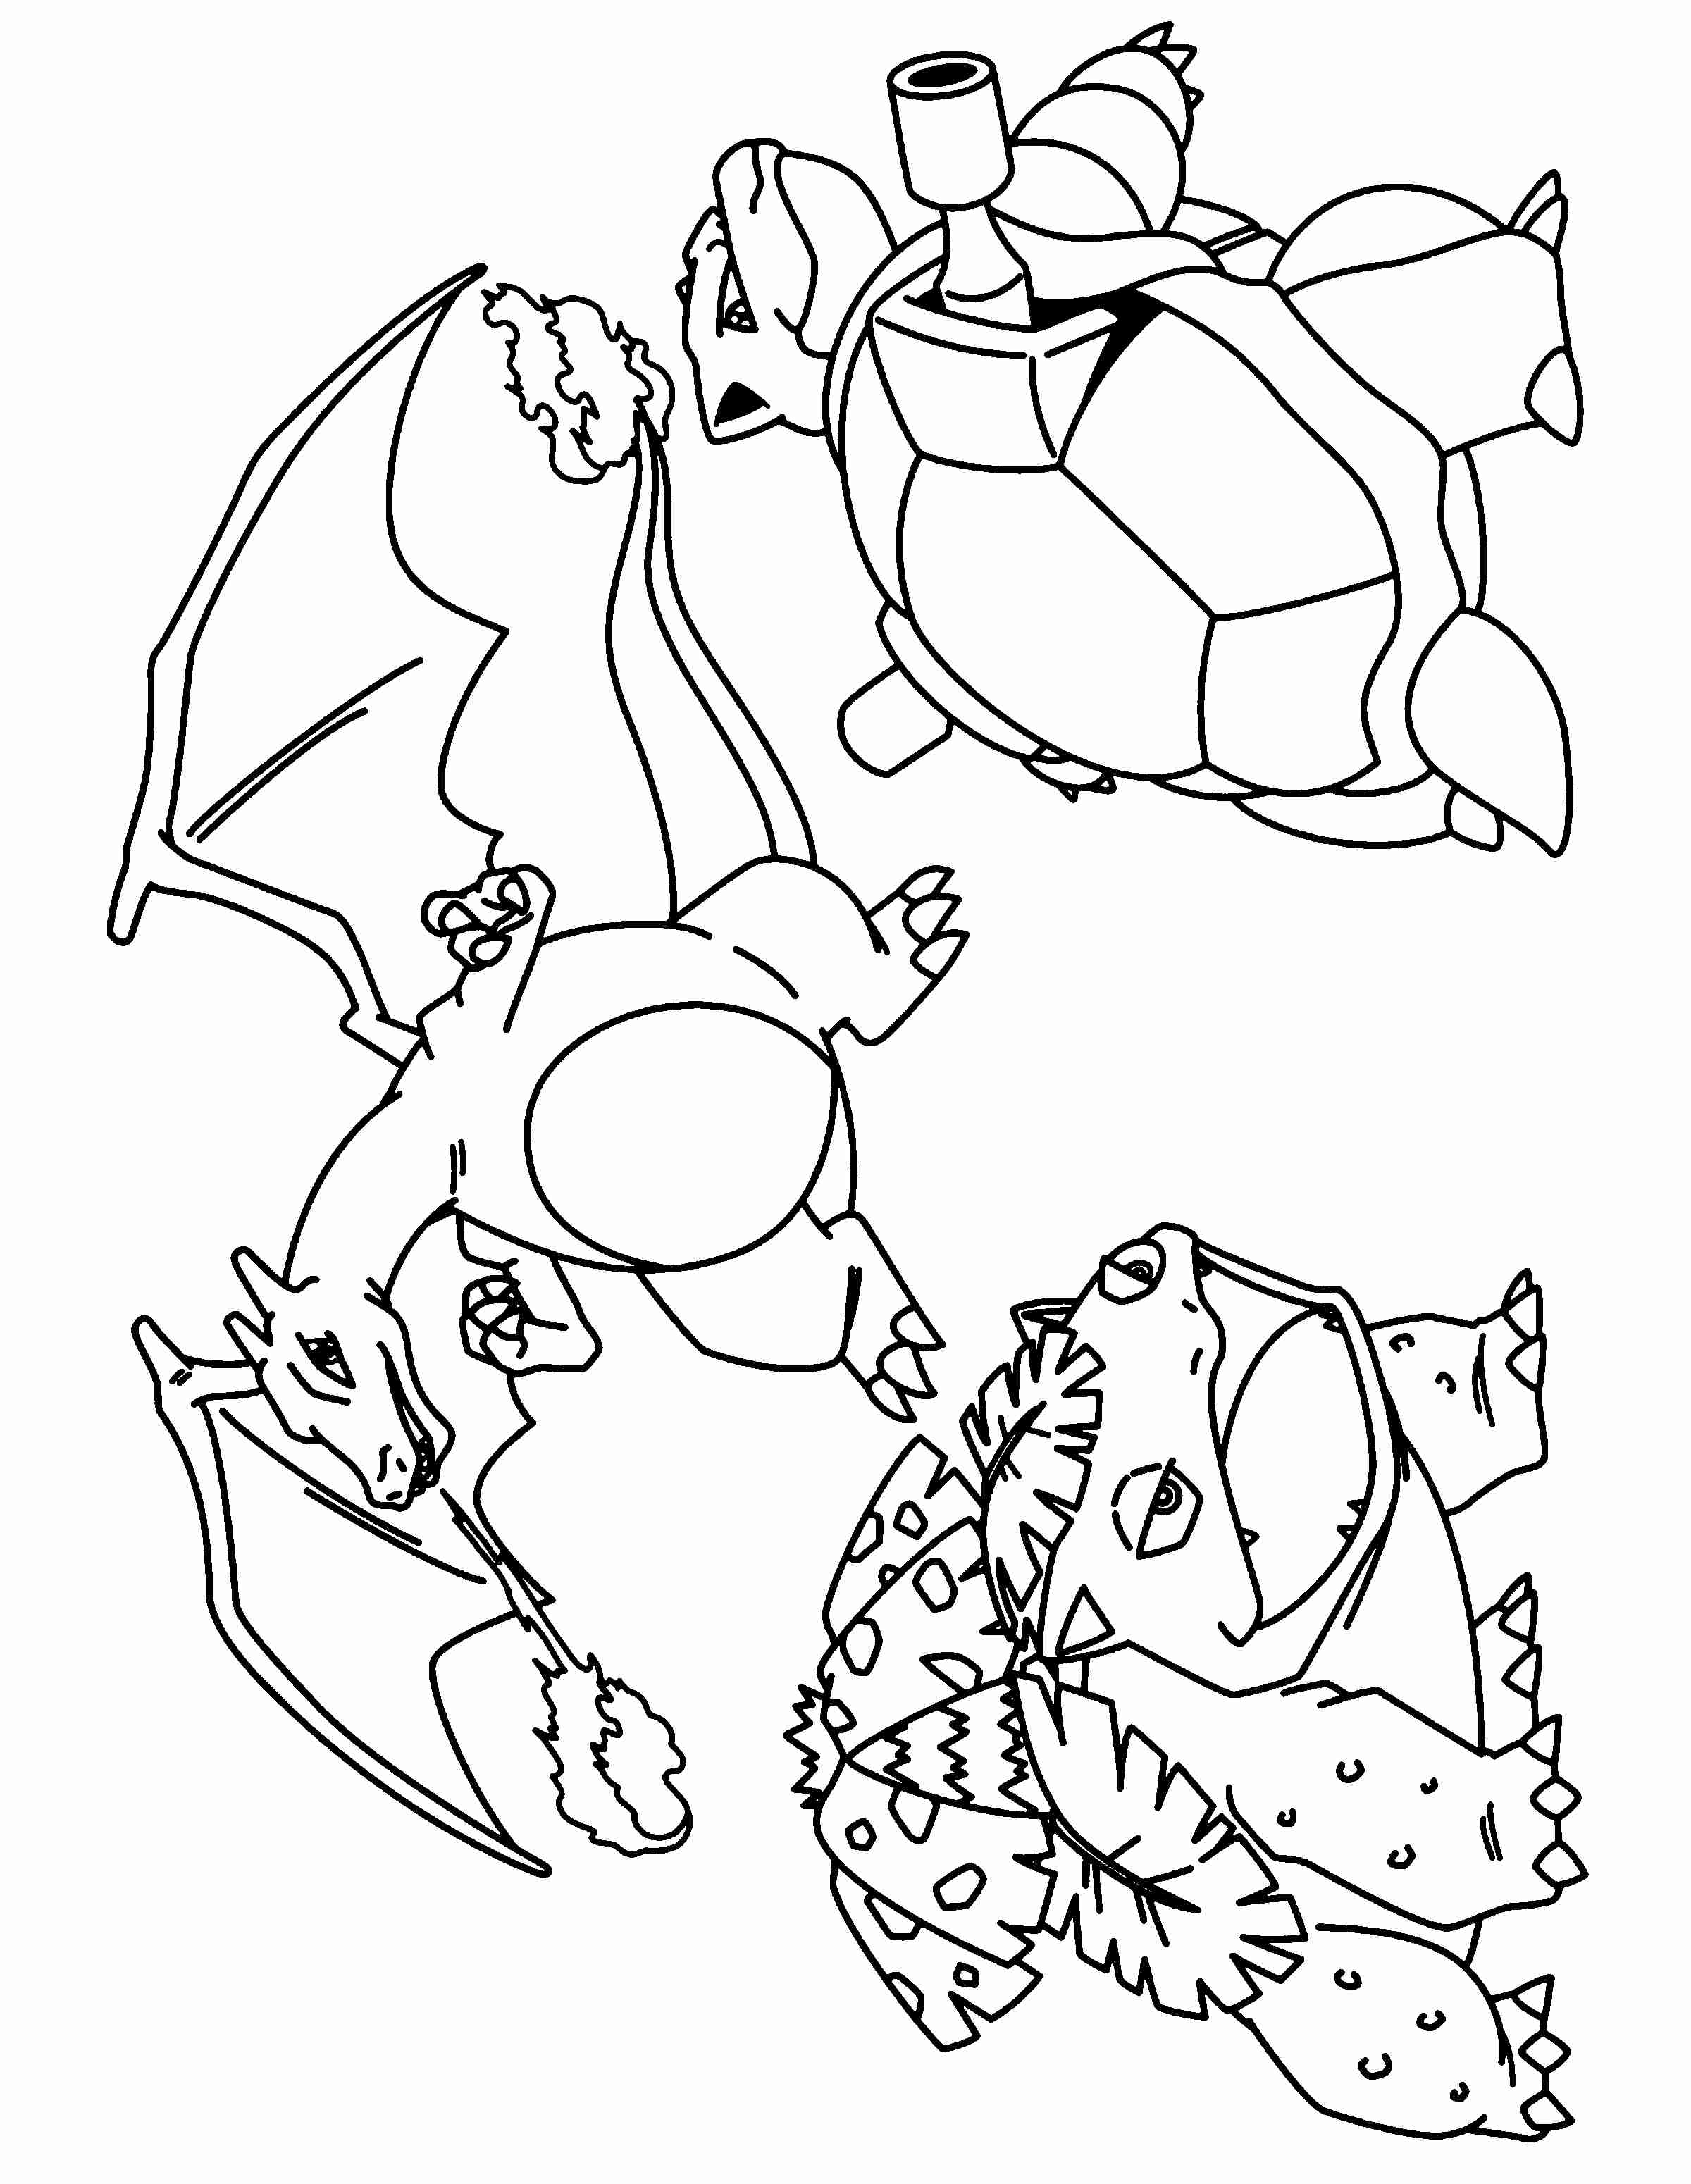 Bulbasaur Line Coloring Page by MadhuVati on DeviantArt | 3100x2400